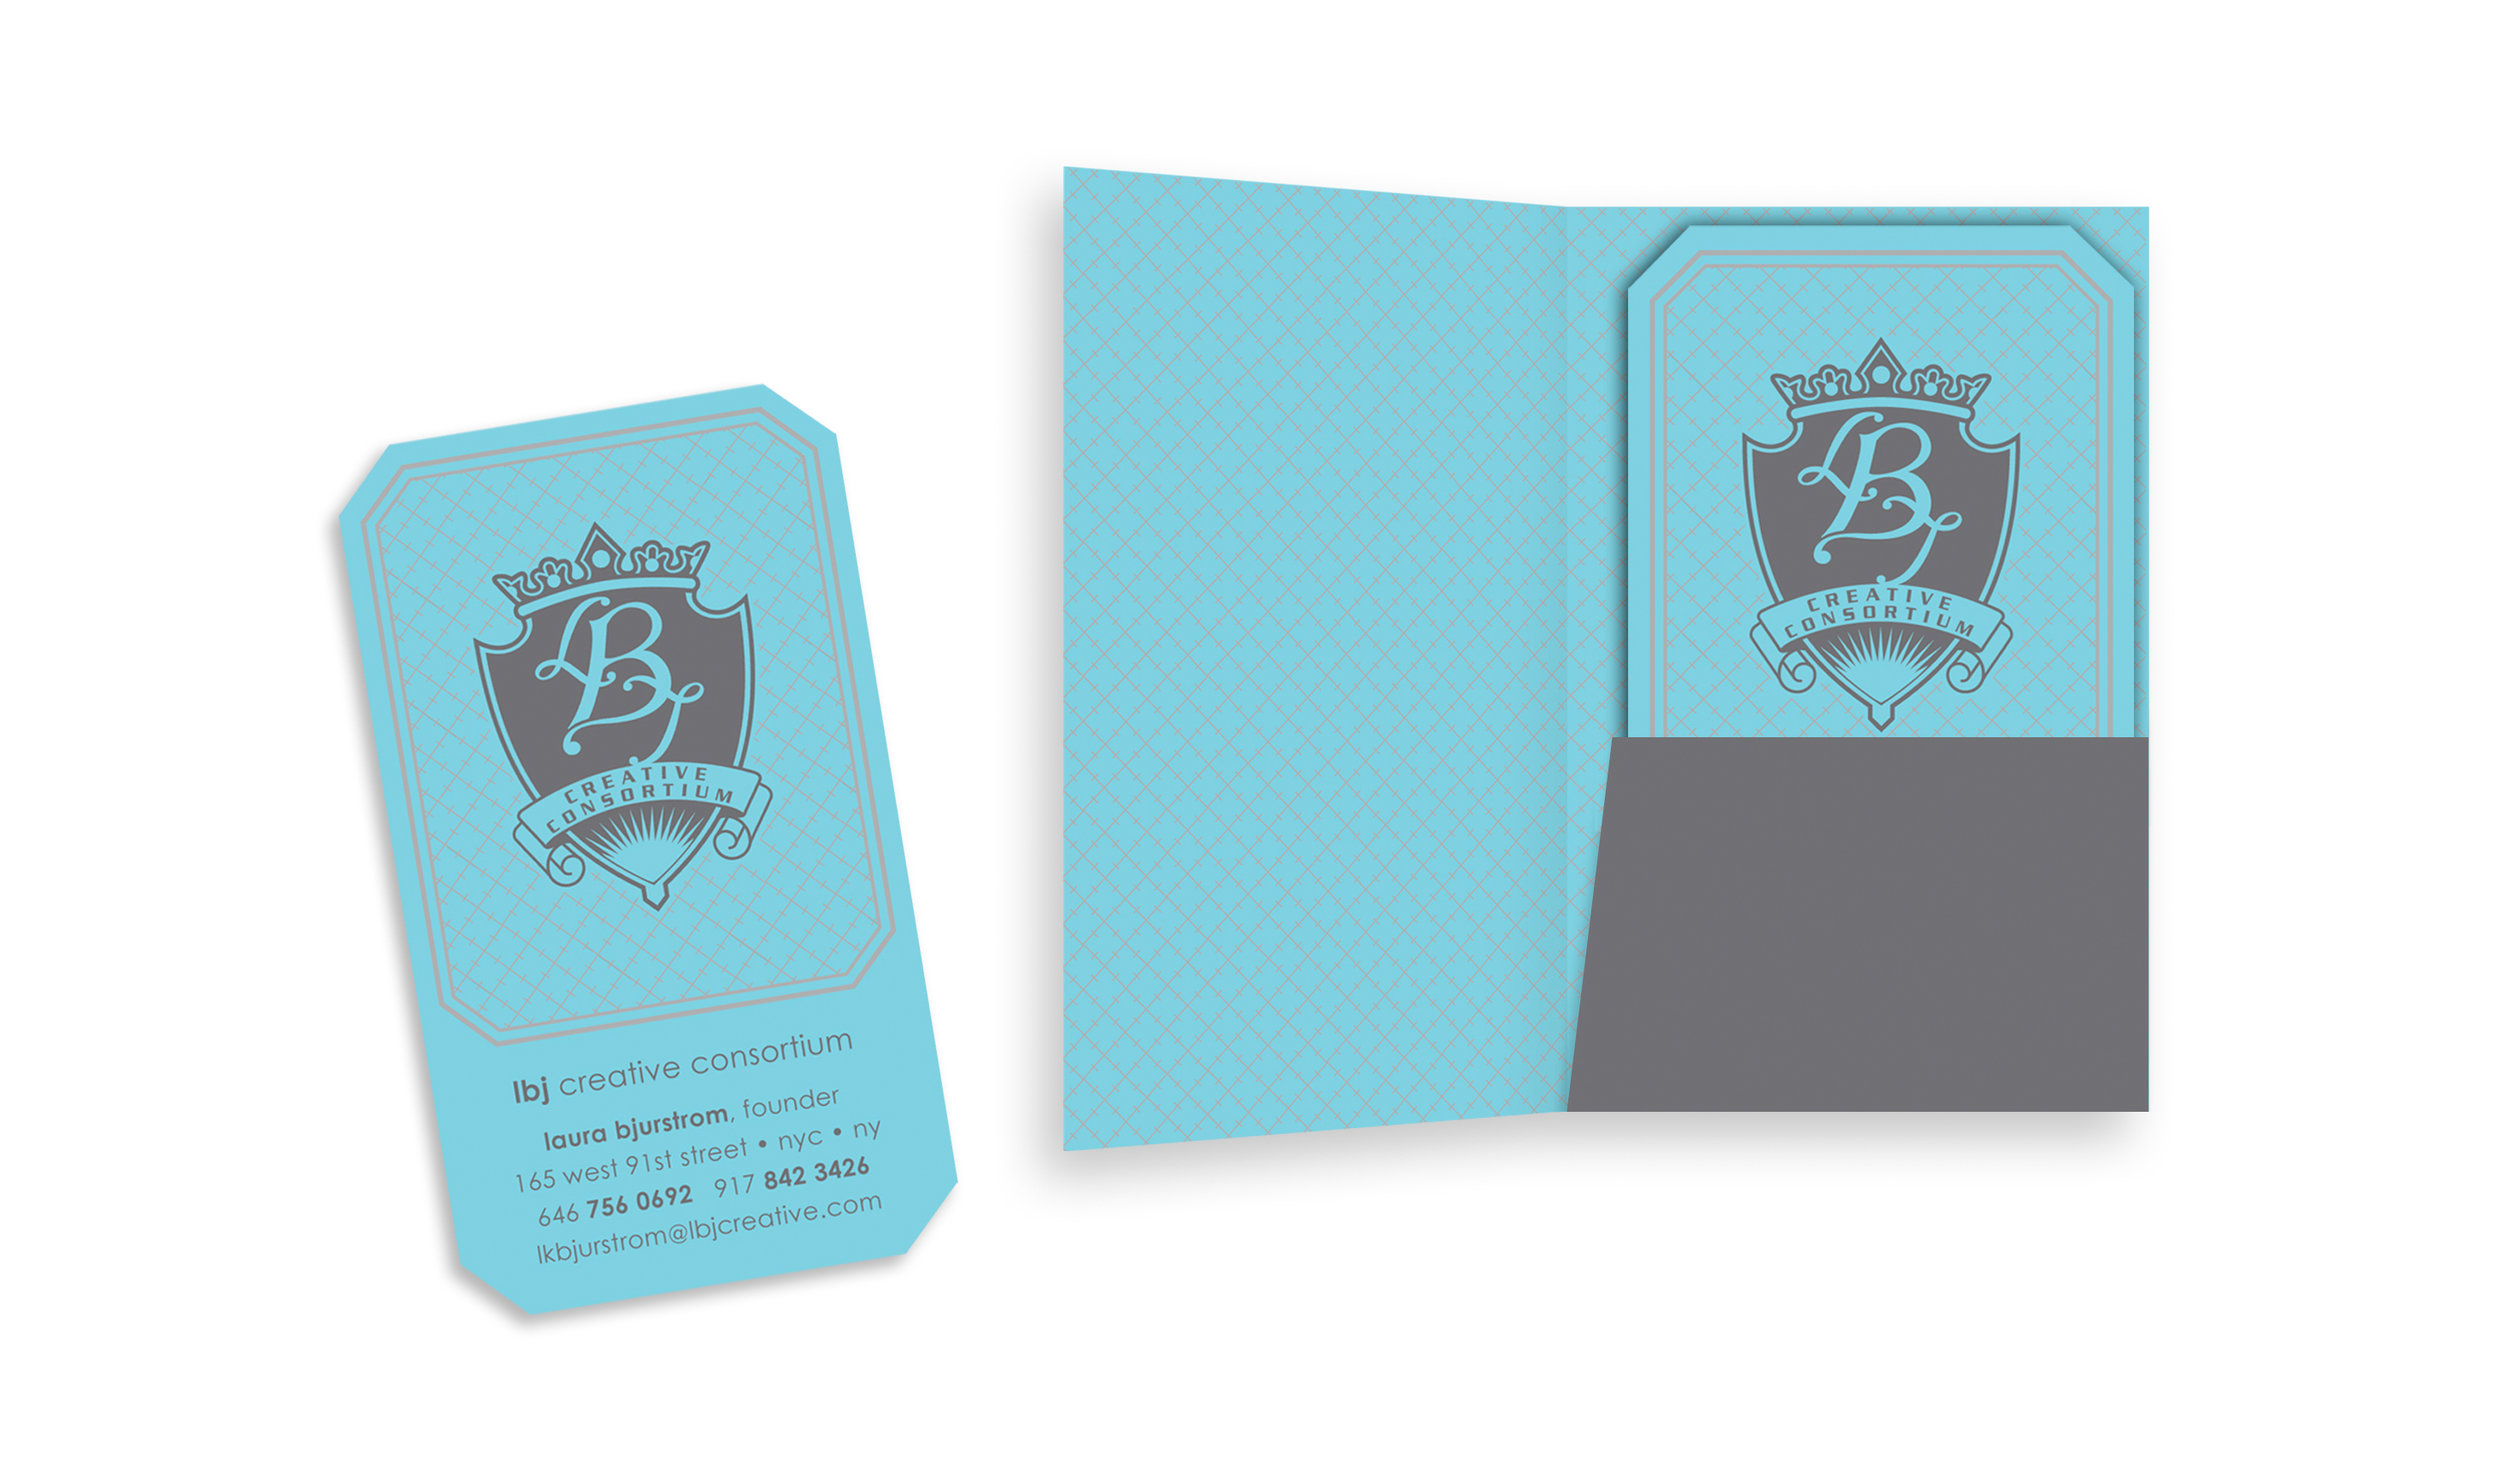 LBJ Business Card and Custom Folder